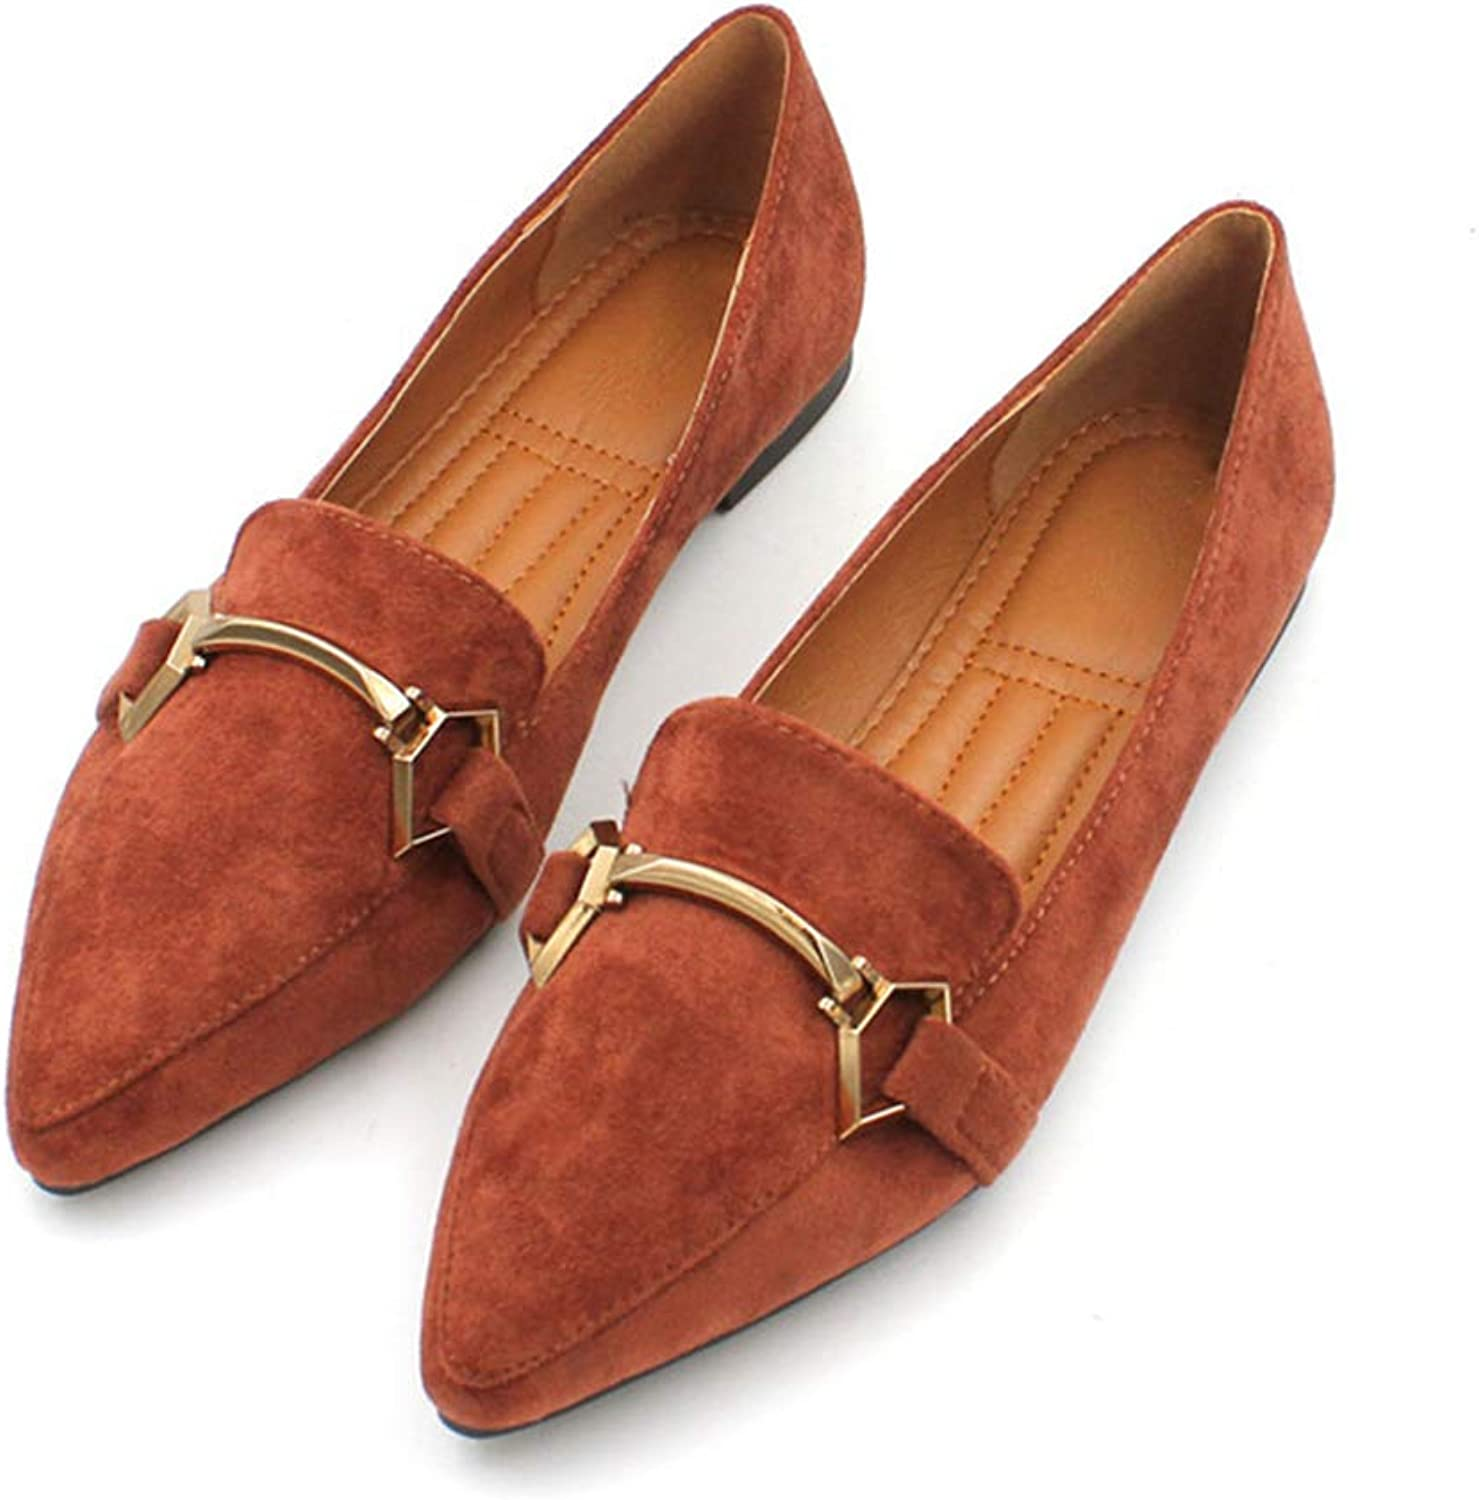 Kyle Walsh Pa Women Classic Flats shoes Pointed Toe Slip-on Female Casual Soft Working Driving Moccasins